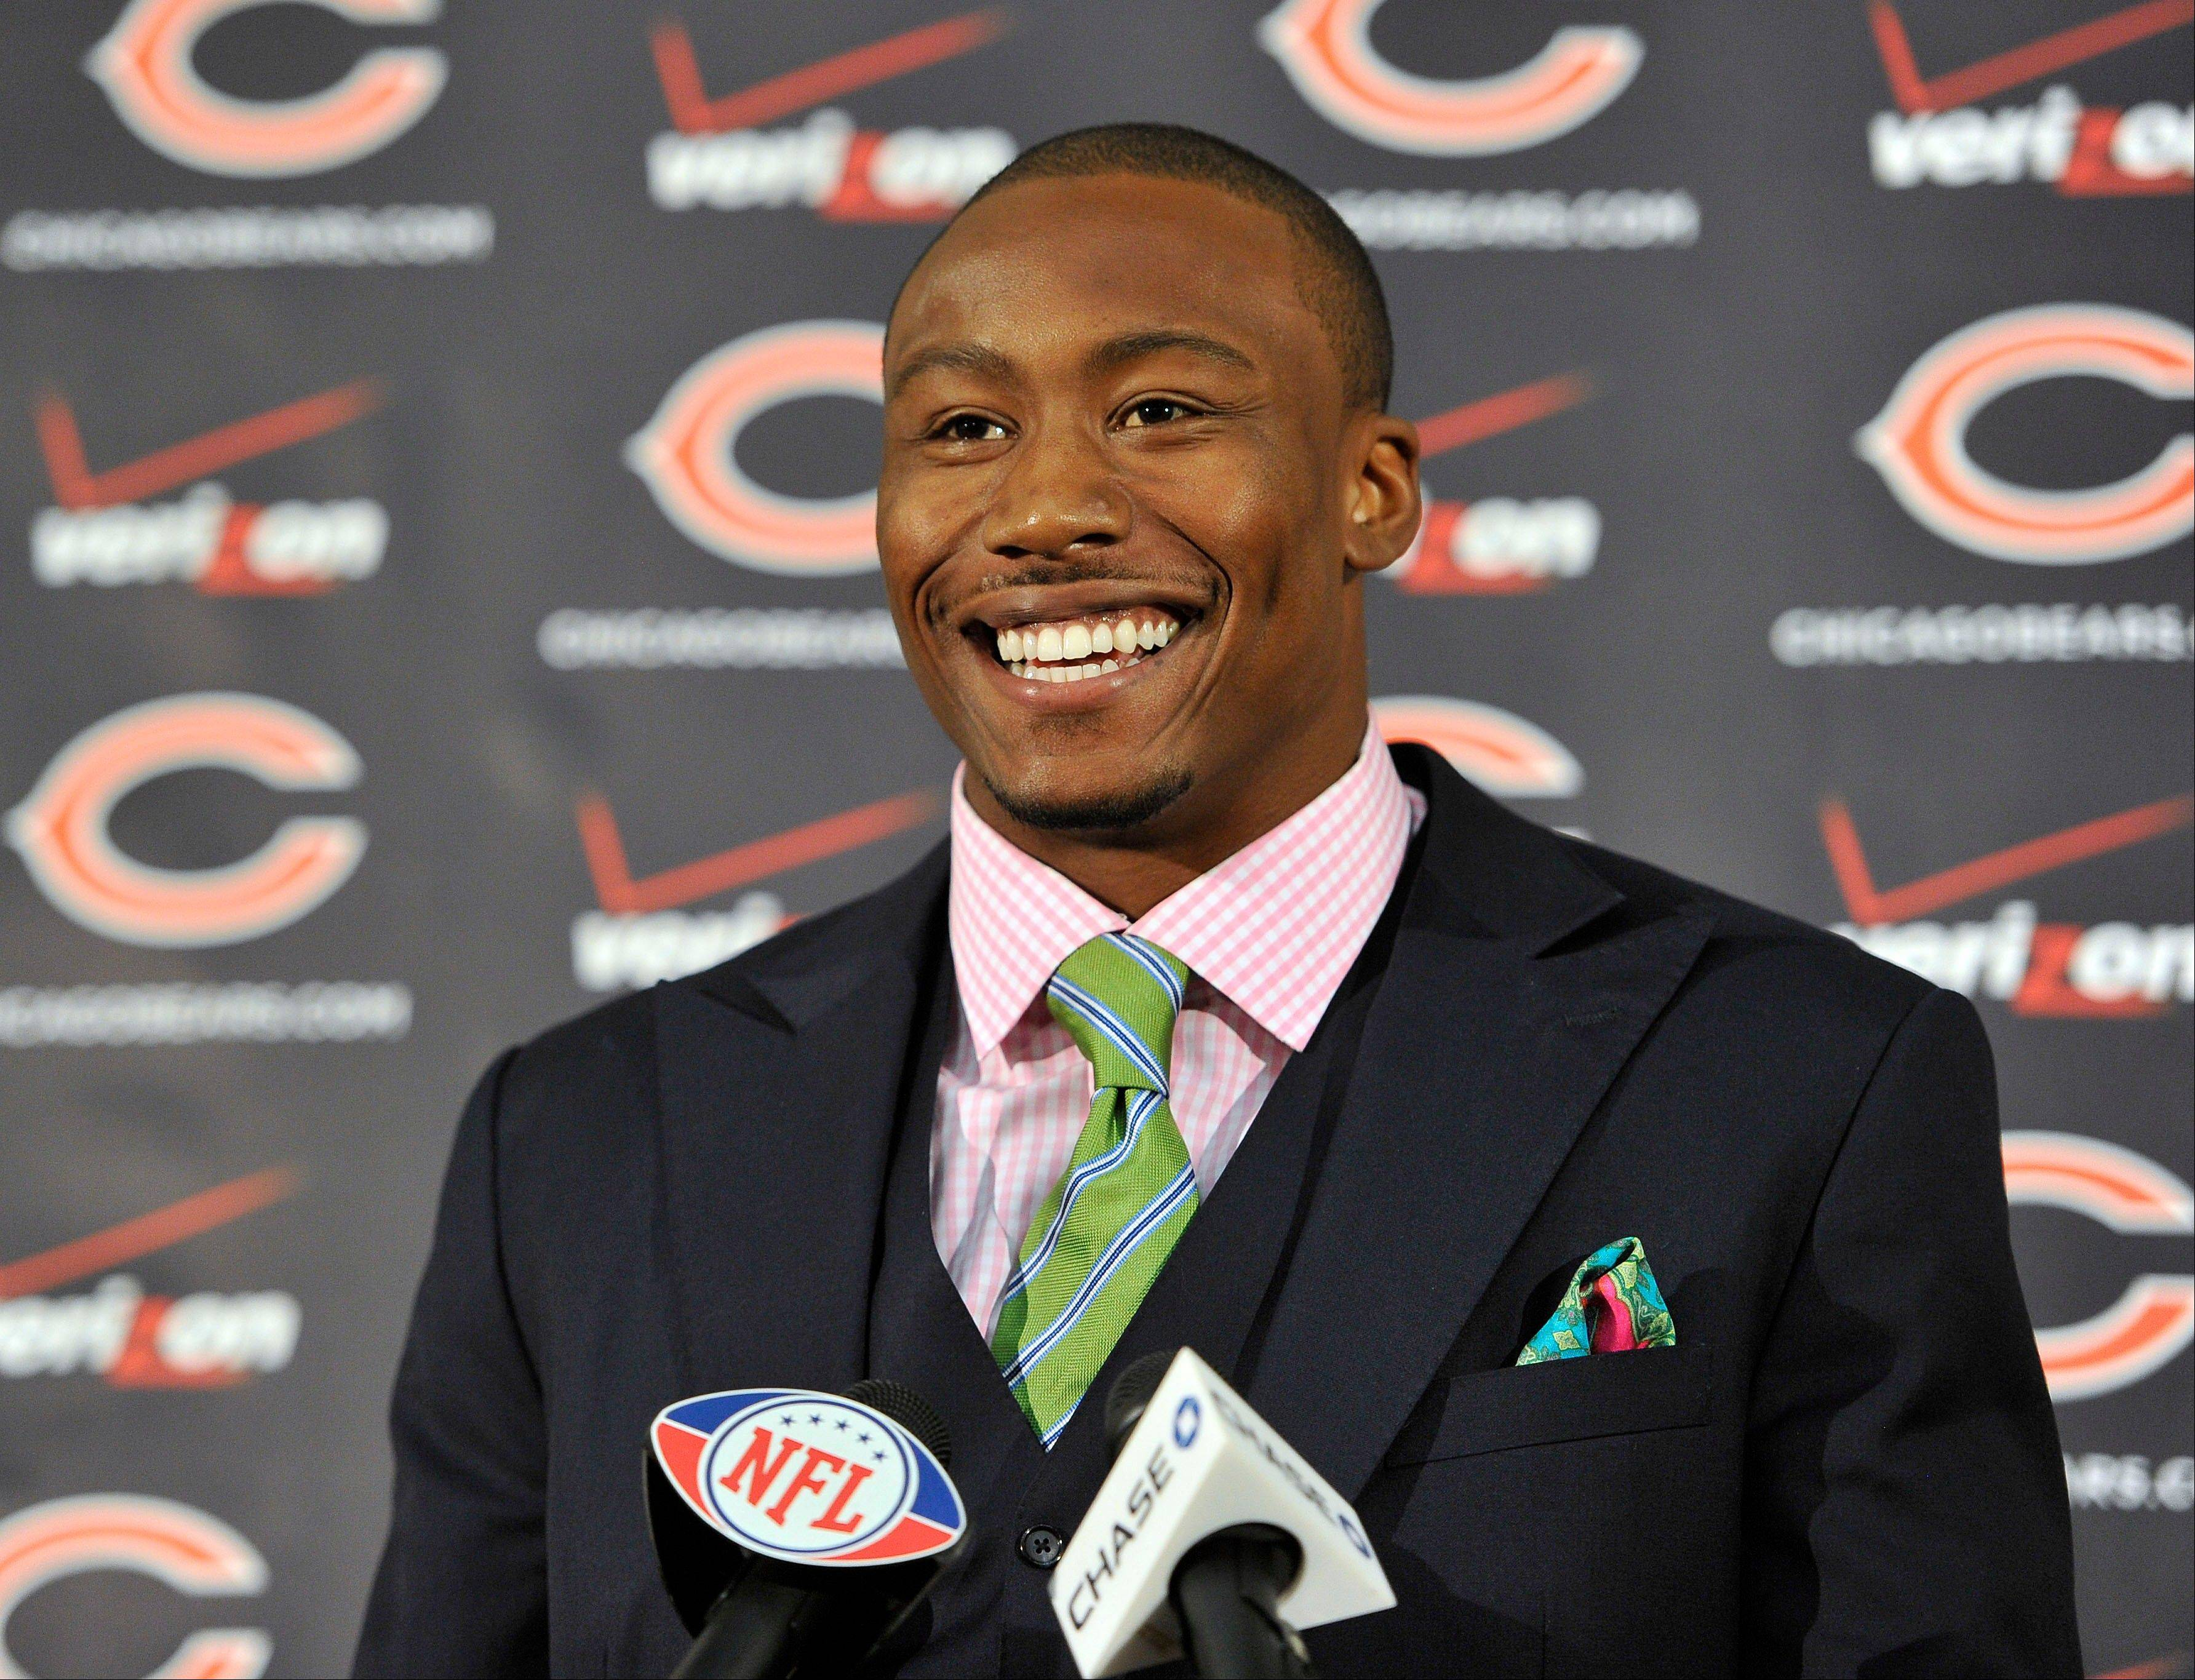 New Chicago Bears wide receiver Brandon Marshall says he wants to be an assets to the Bears on and off the field, and he believes the help he has received toward his Borderline Personality Disorder will help that to happen.